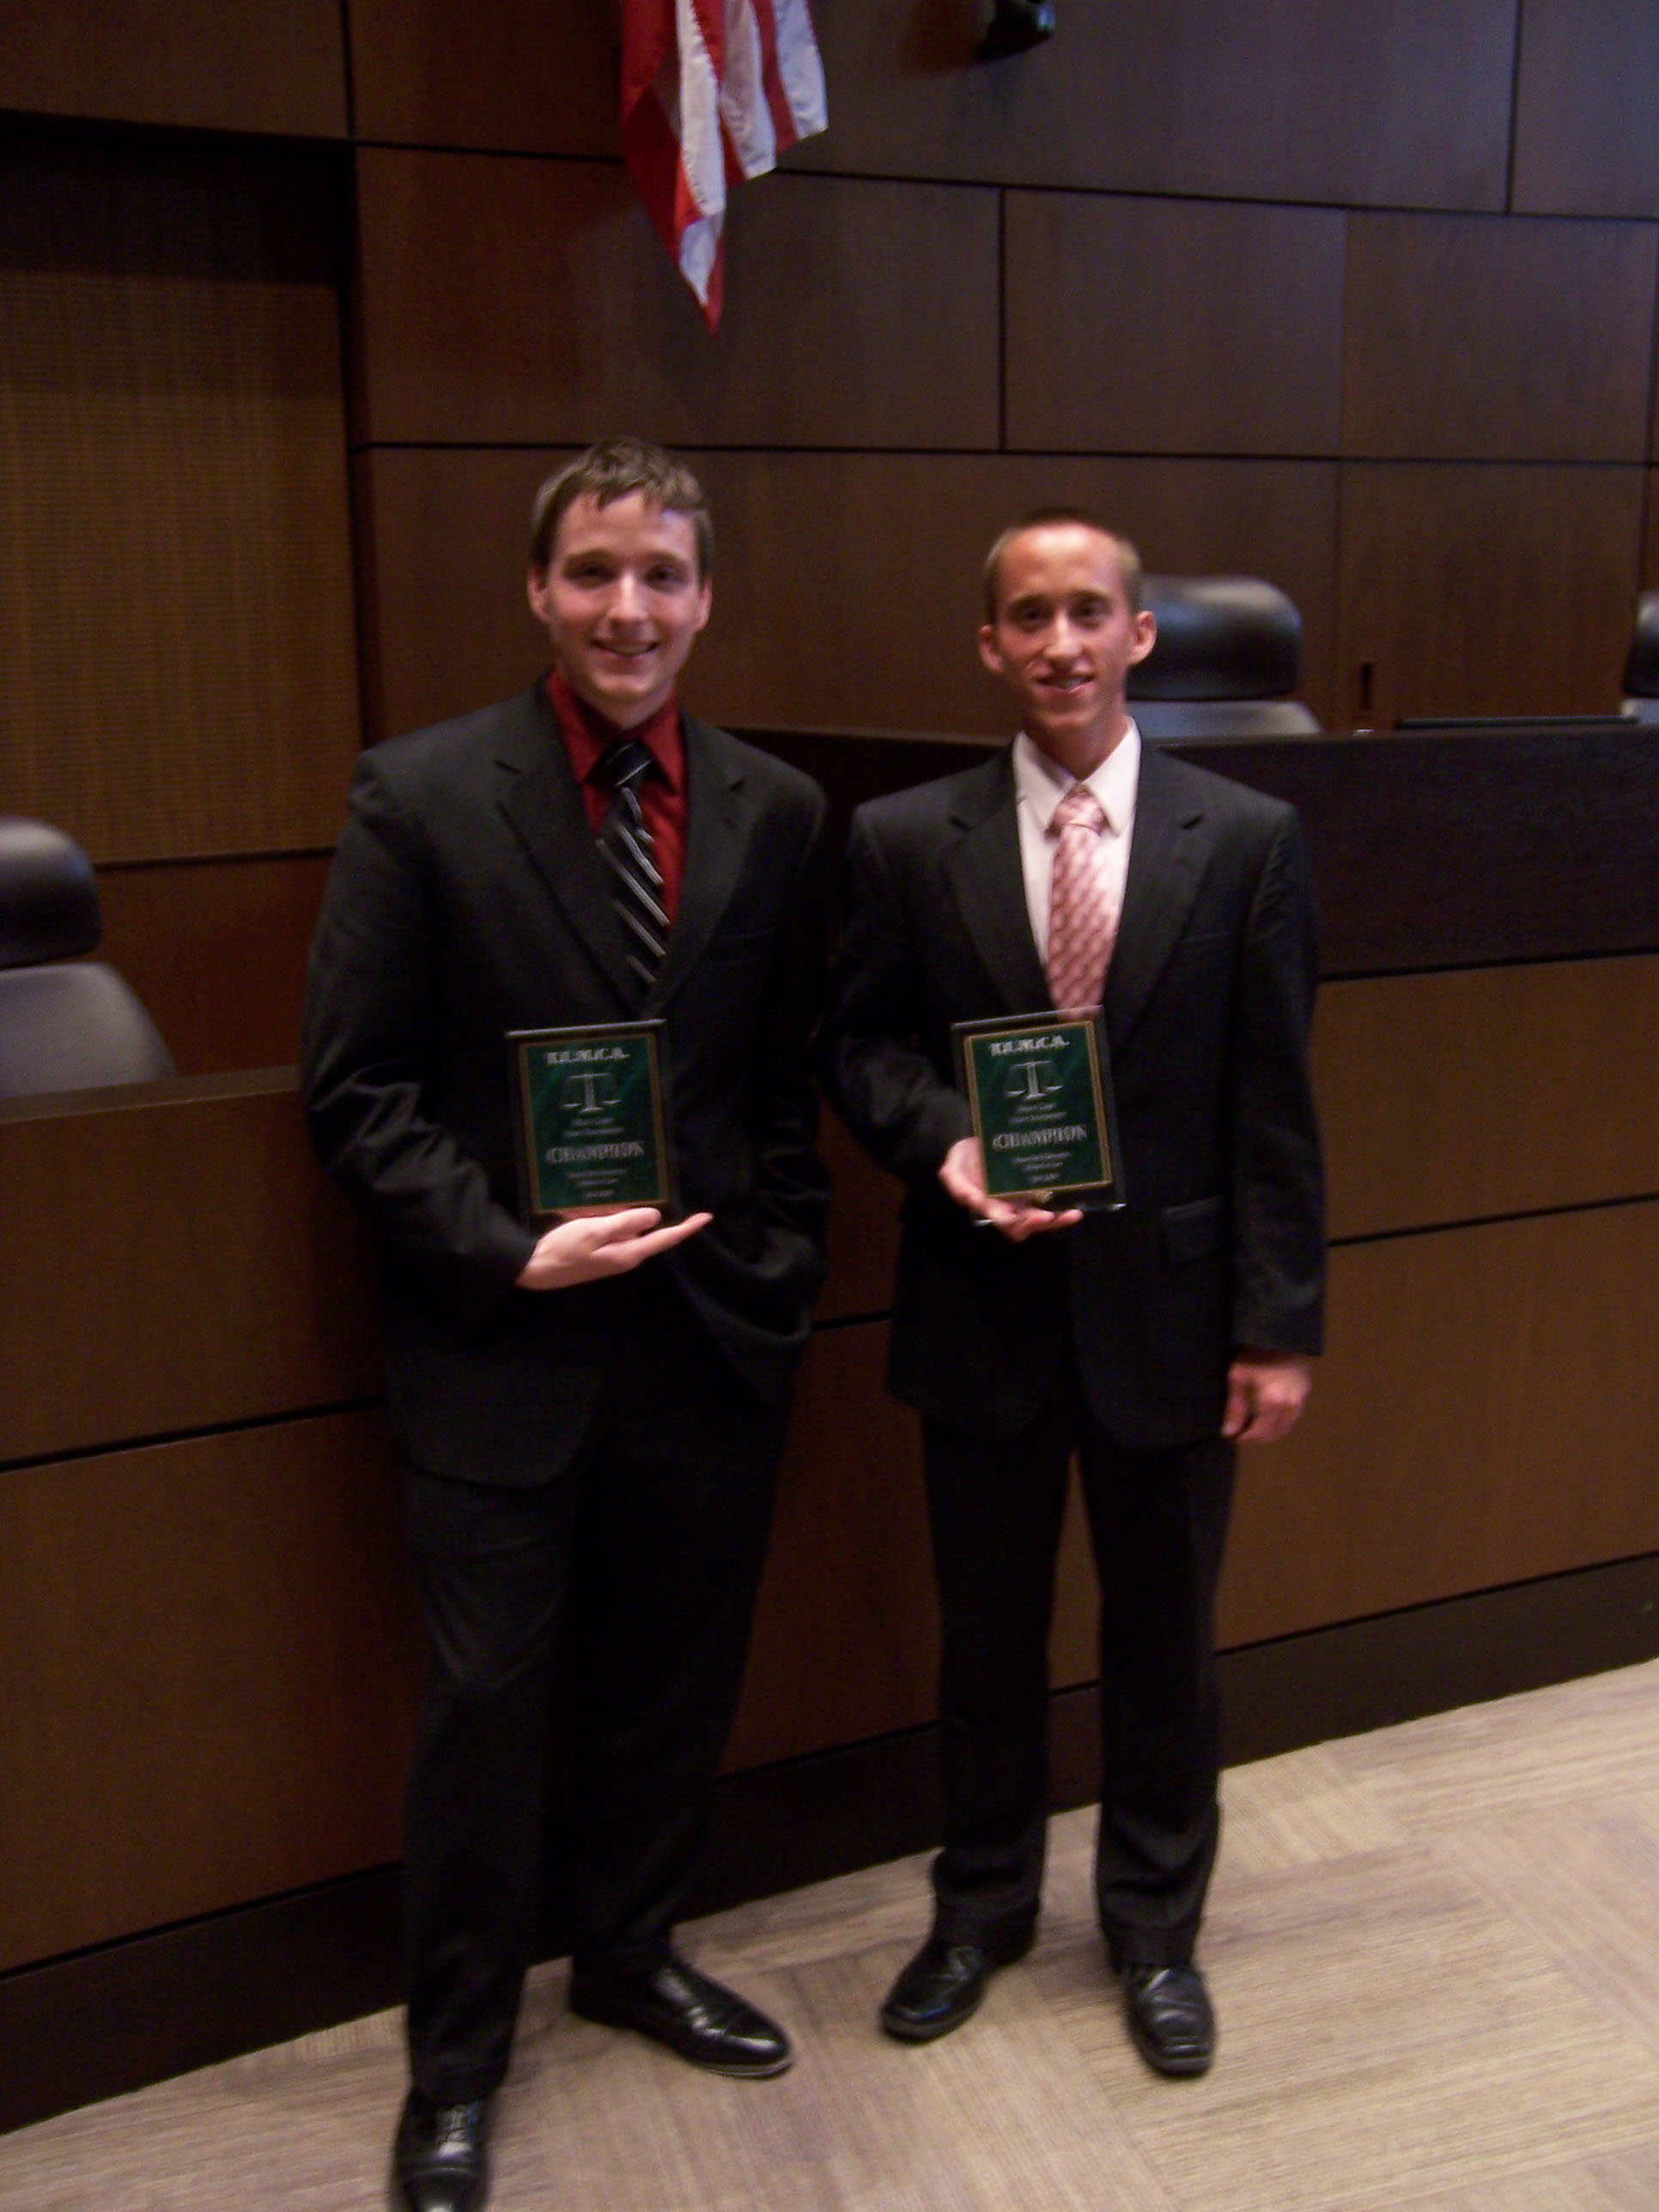 Moot Court_Texas Tech 2009 Erik and Ray